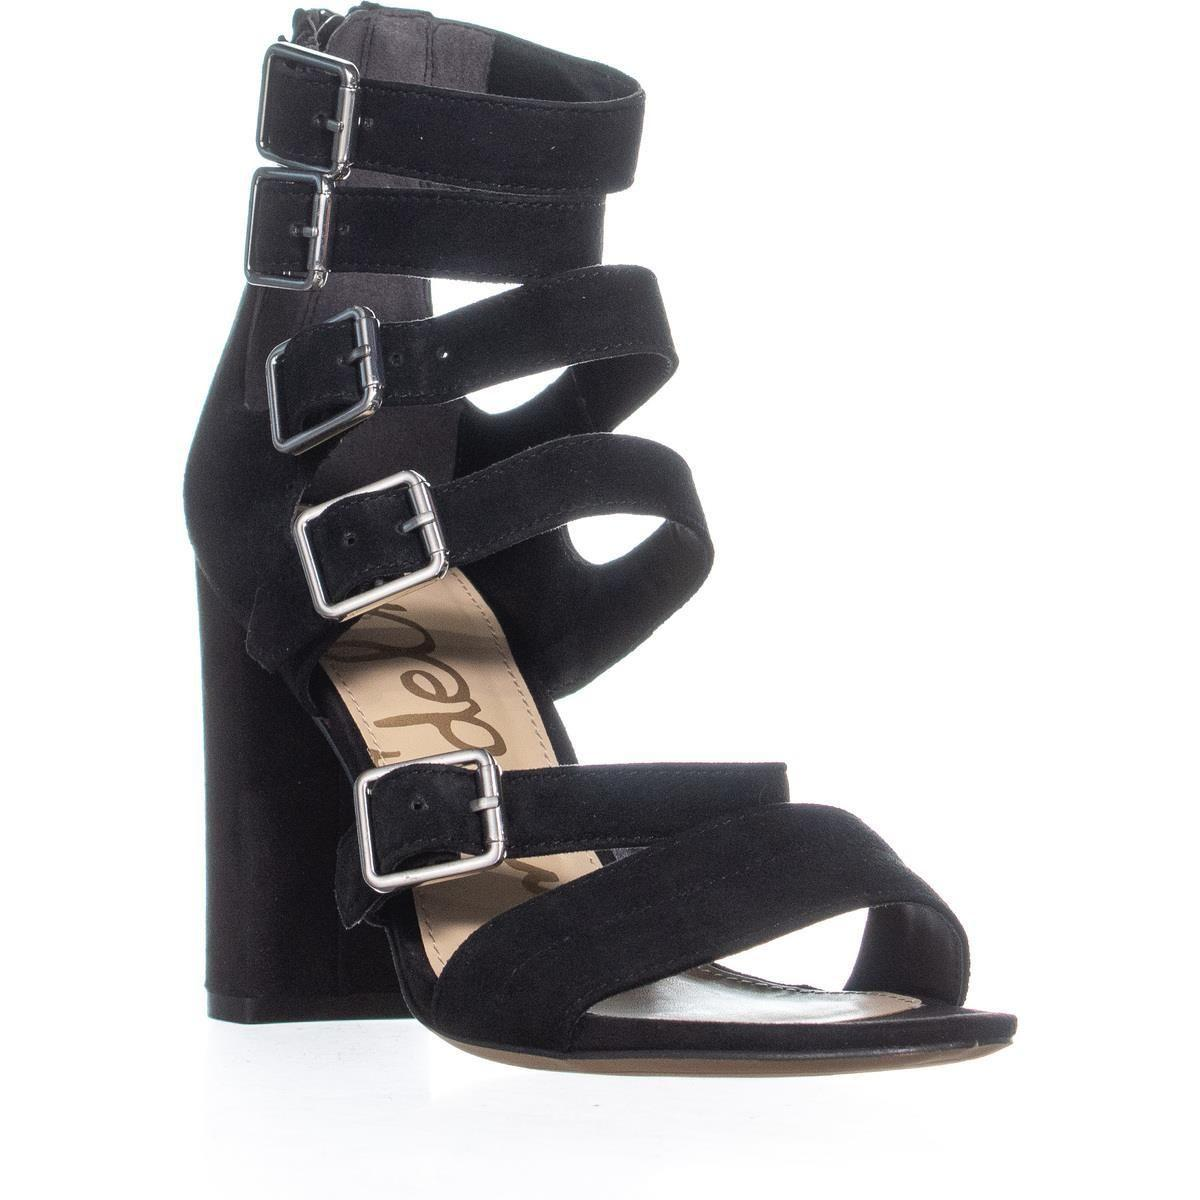 b2165a6c778b Sam Edelman Yasmina Multi Buckle Dress Sandals - Save 13% - Lyst